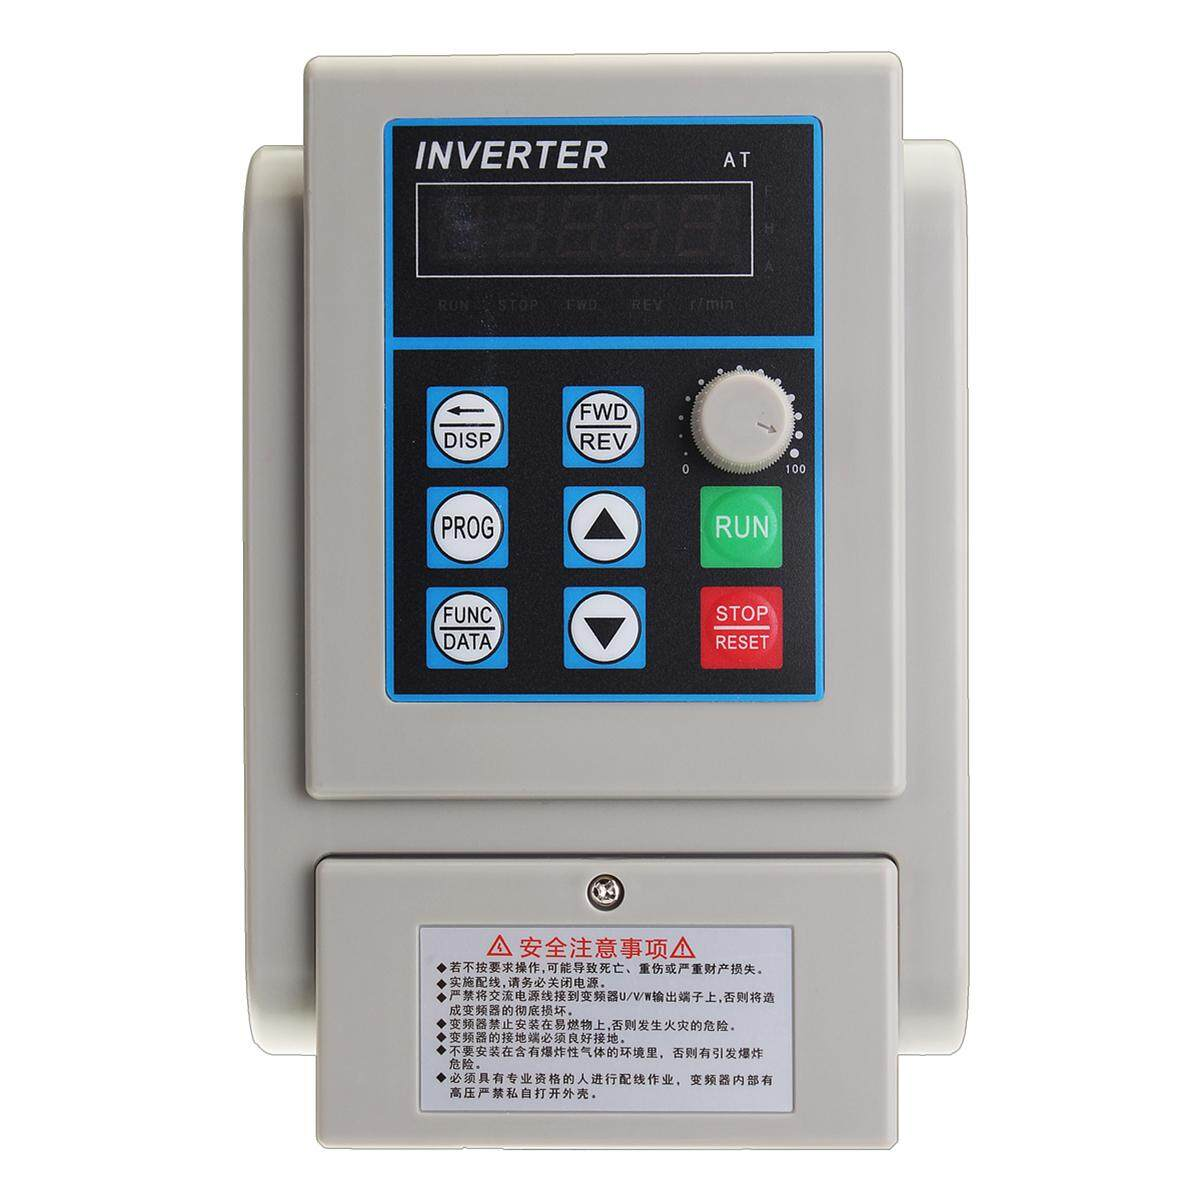 【Free Shipping + Super Deal + Limited Offer】220V 2.2KW 3HP Mendorong Frekuensi Variabel Inverter CNC VFD Tunggal untuk Tiga Fasa-Internasional